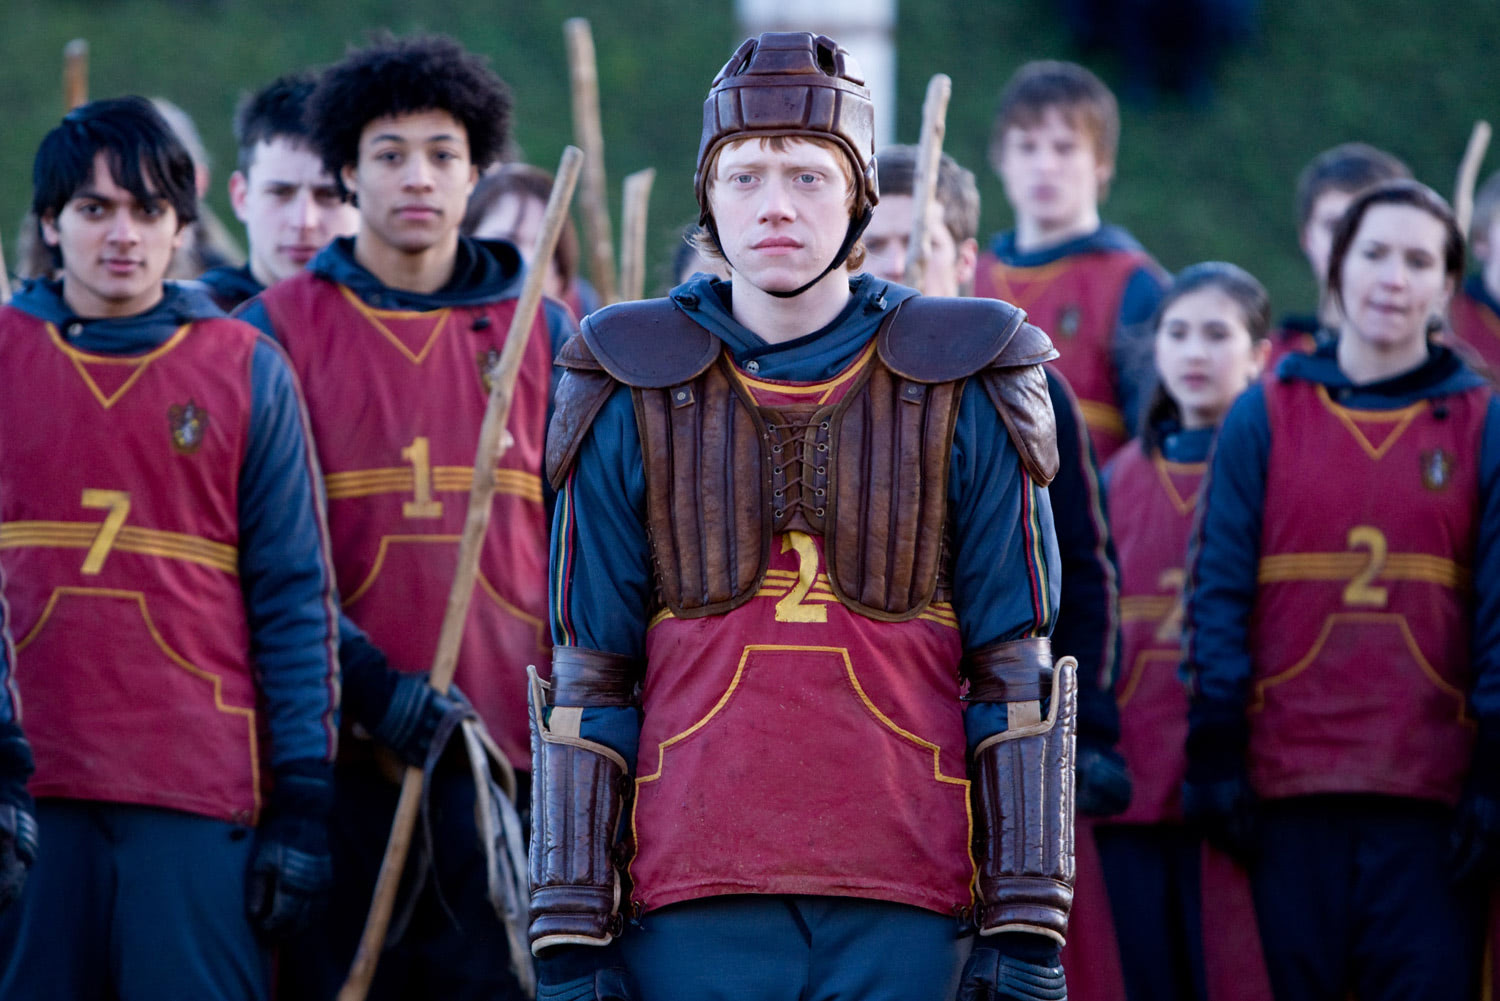 Ron is nervous at Quidditch tryouts